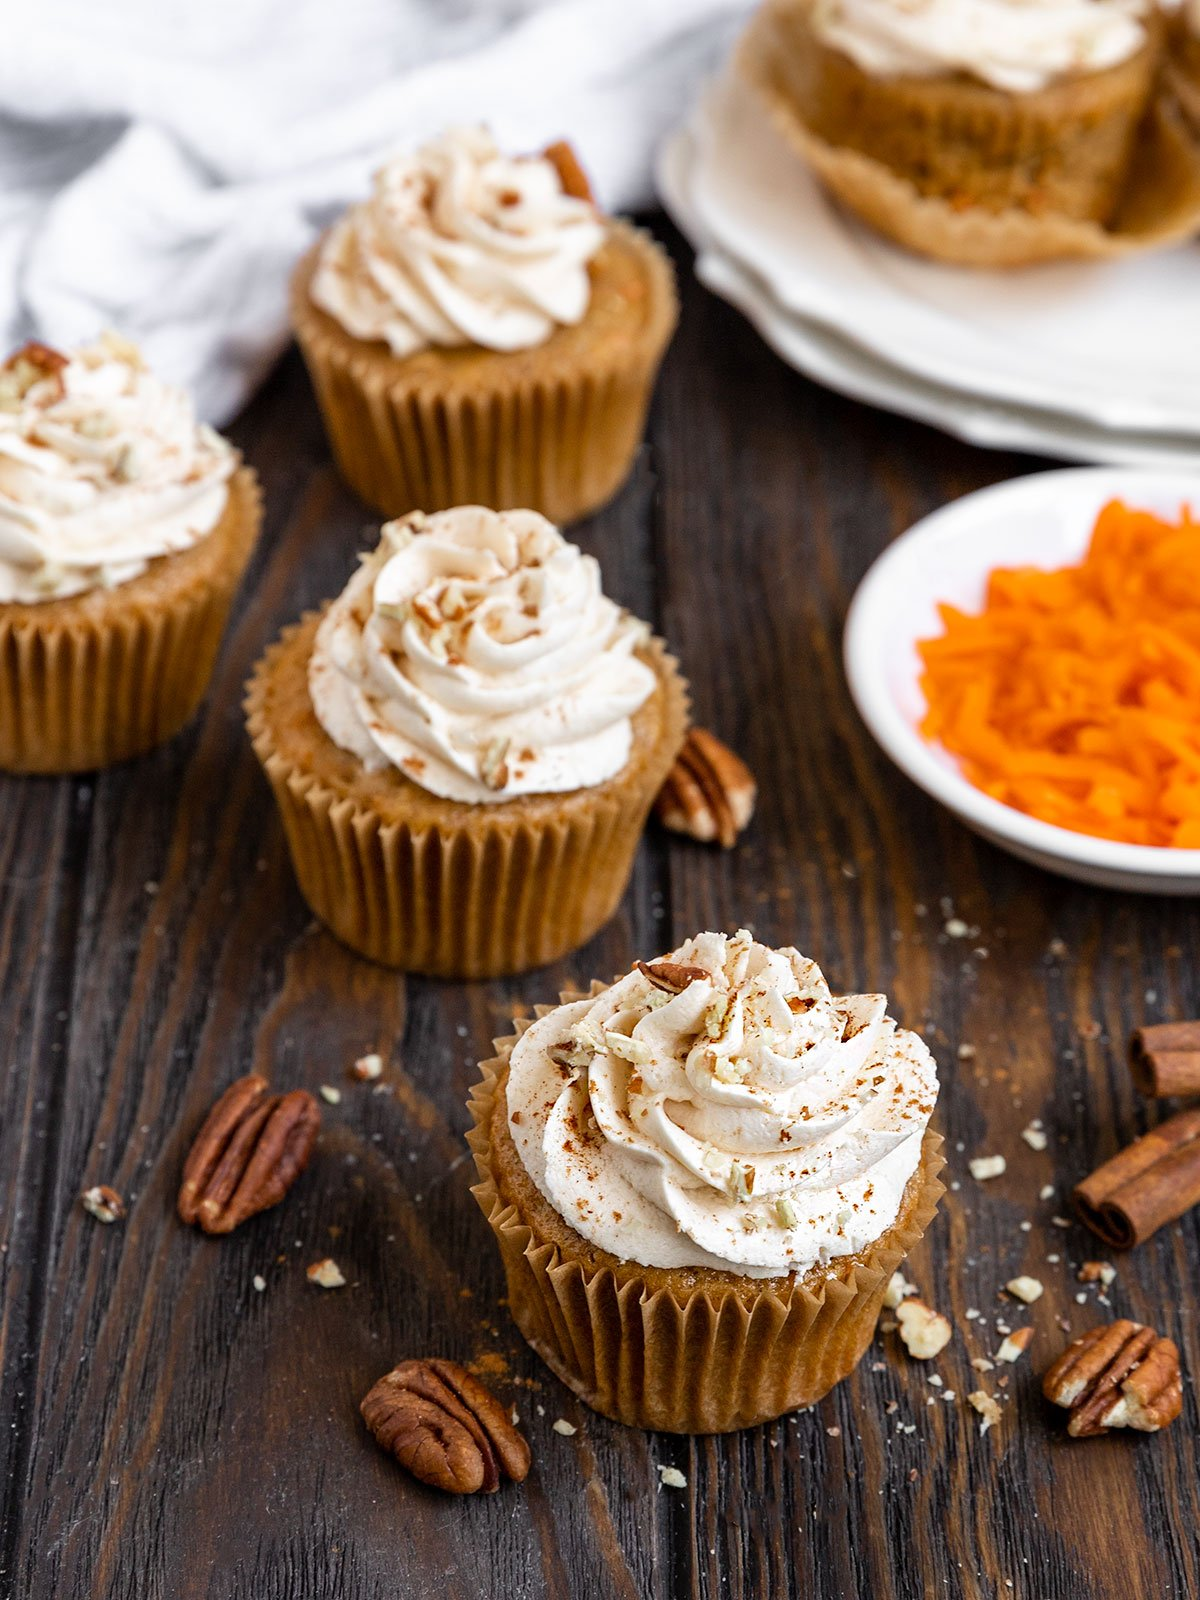 five carrot cake cupcakes on a wooden board with maple frosting and chopped pecans on top